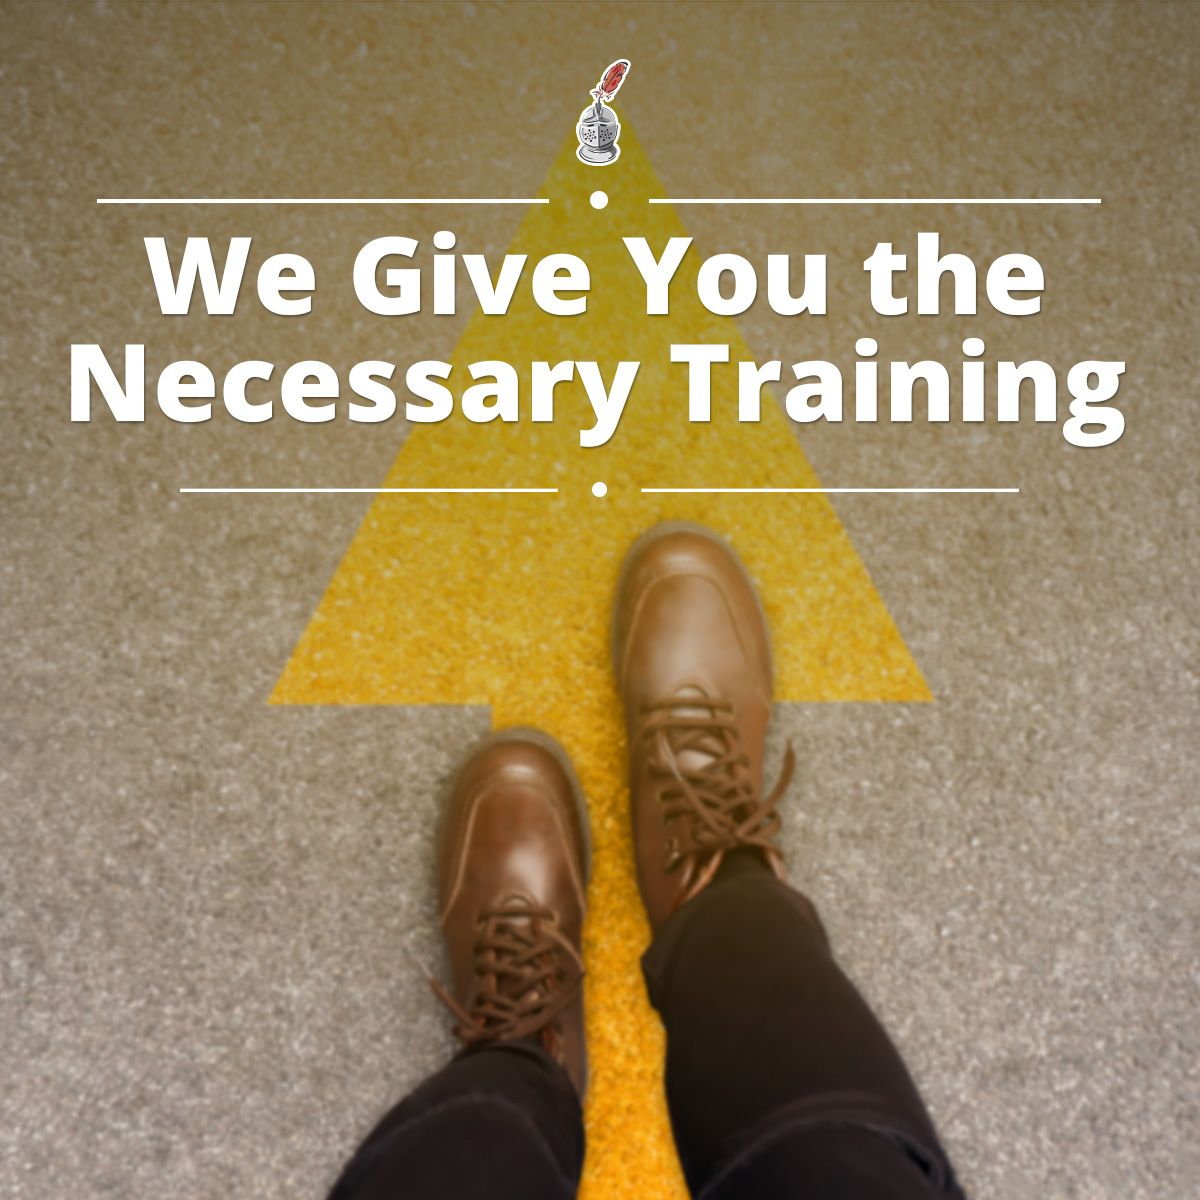 We Give You the Necessary Training